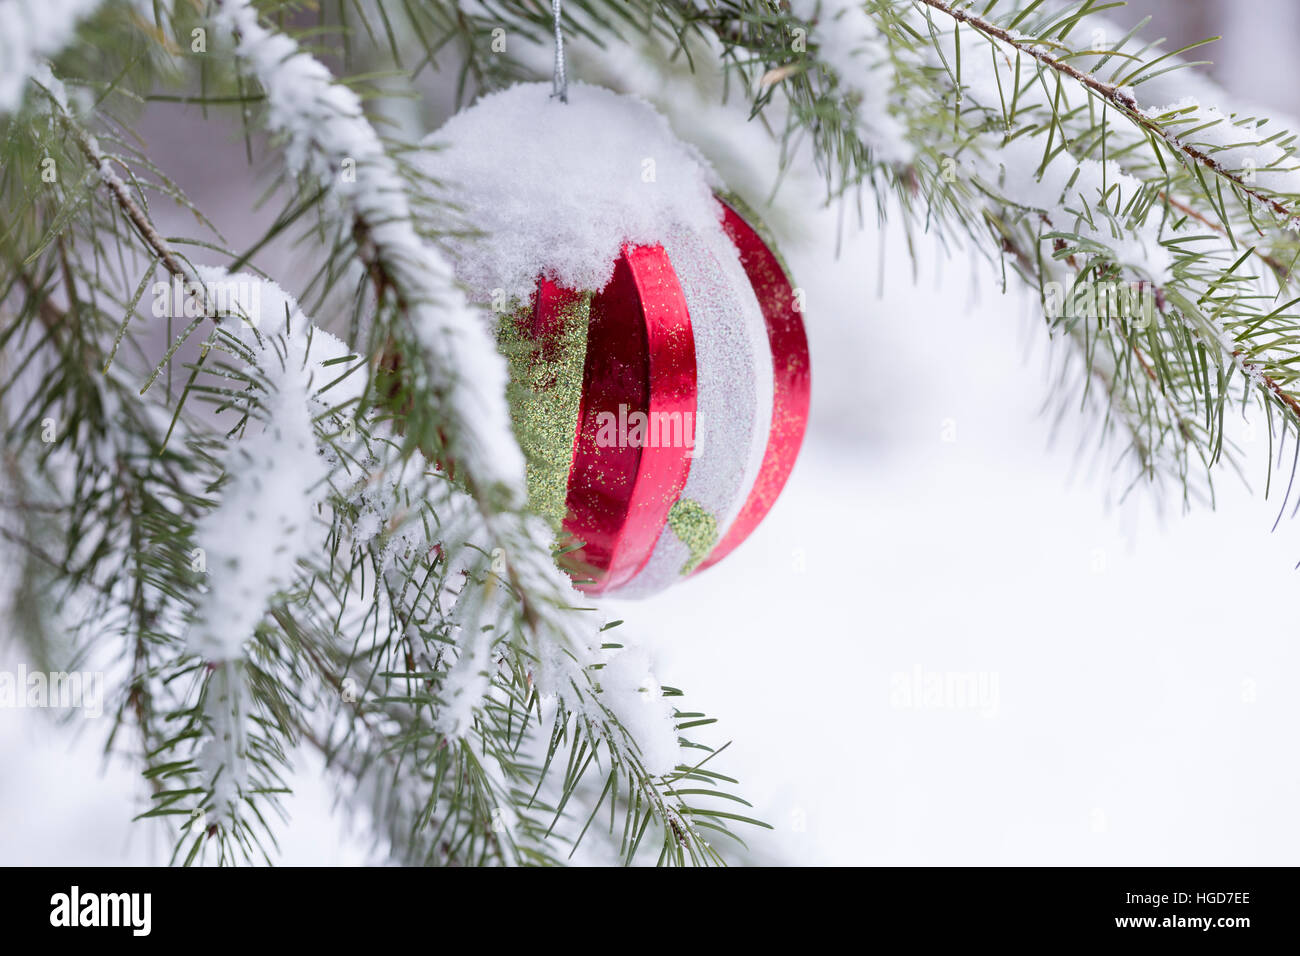 Snow covered tree outdoors with Christmas decorations Stock Photo